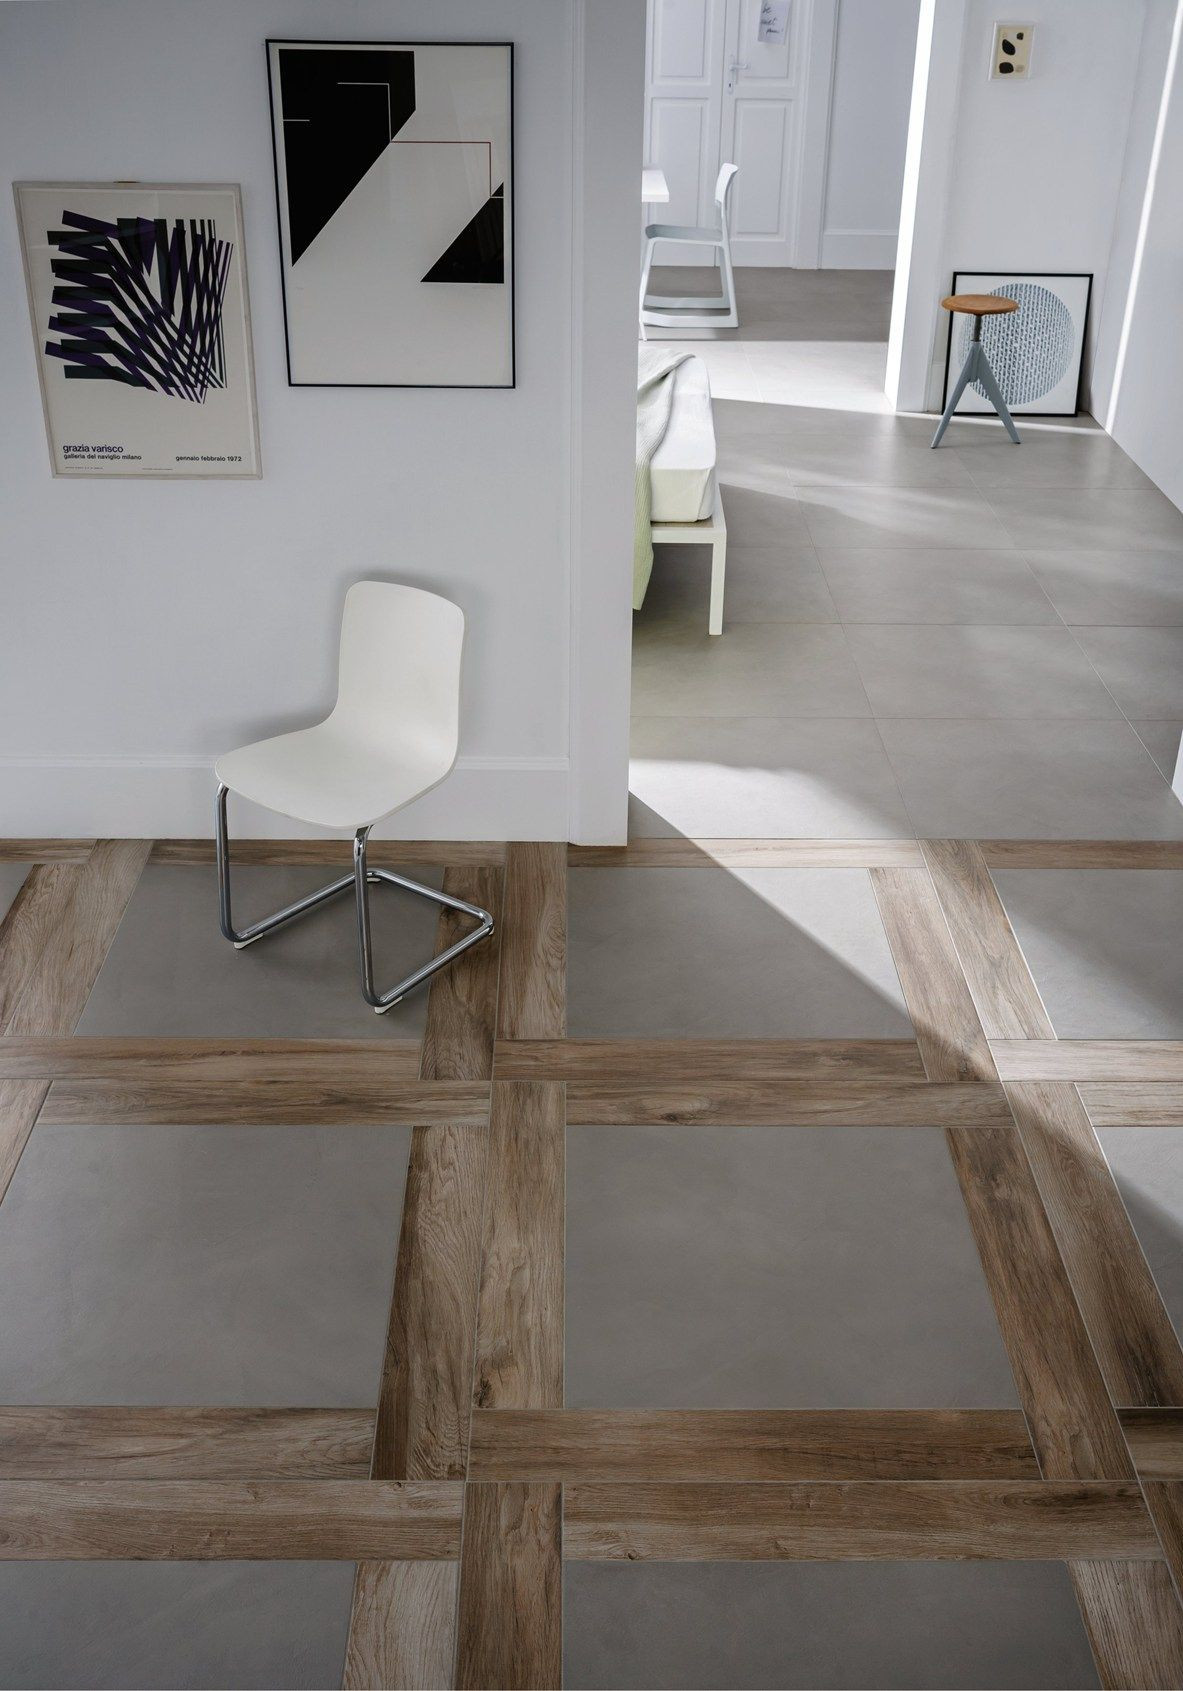 zep hardwood laminate floor cleaner of marazzi presents block collection inspired by resin contemporary inside marazzi presents block collection inspired by resin floor patterns tile design tile floor